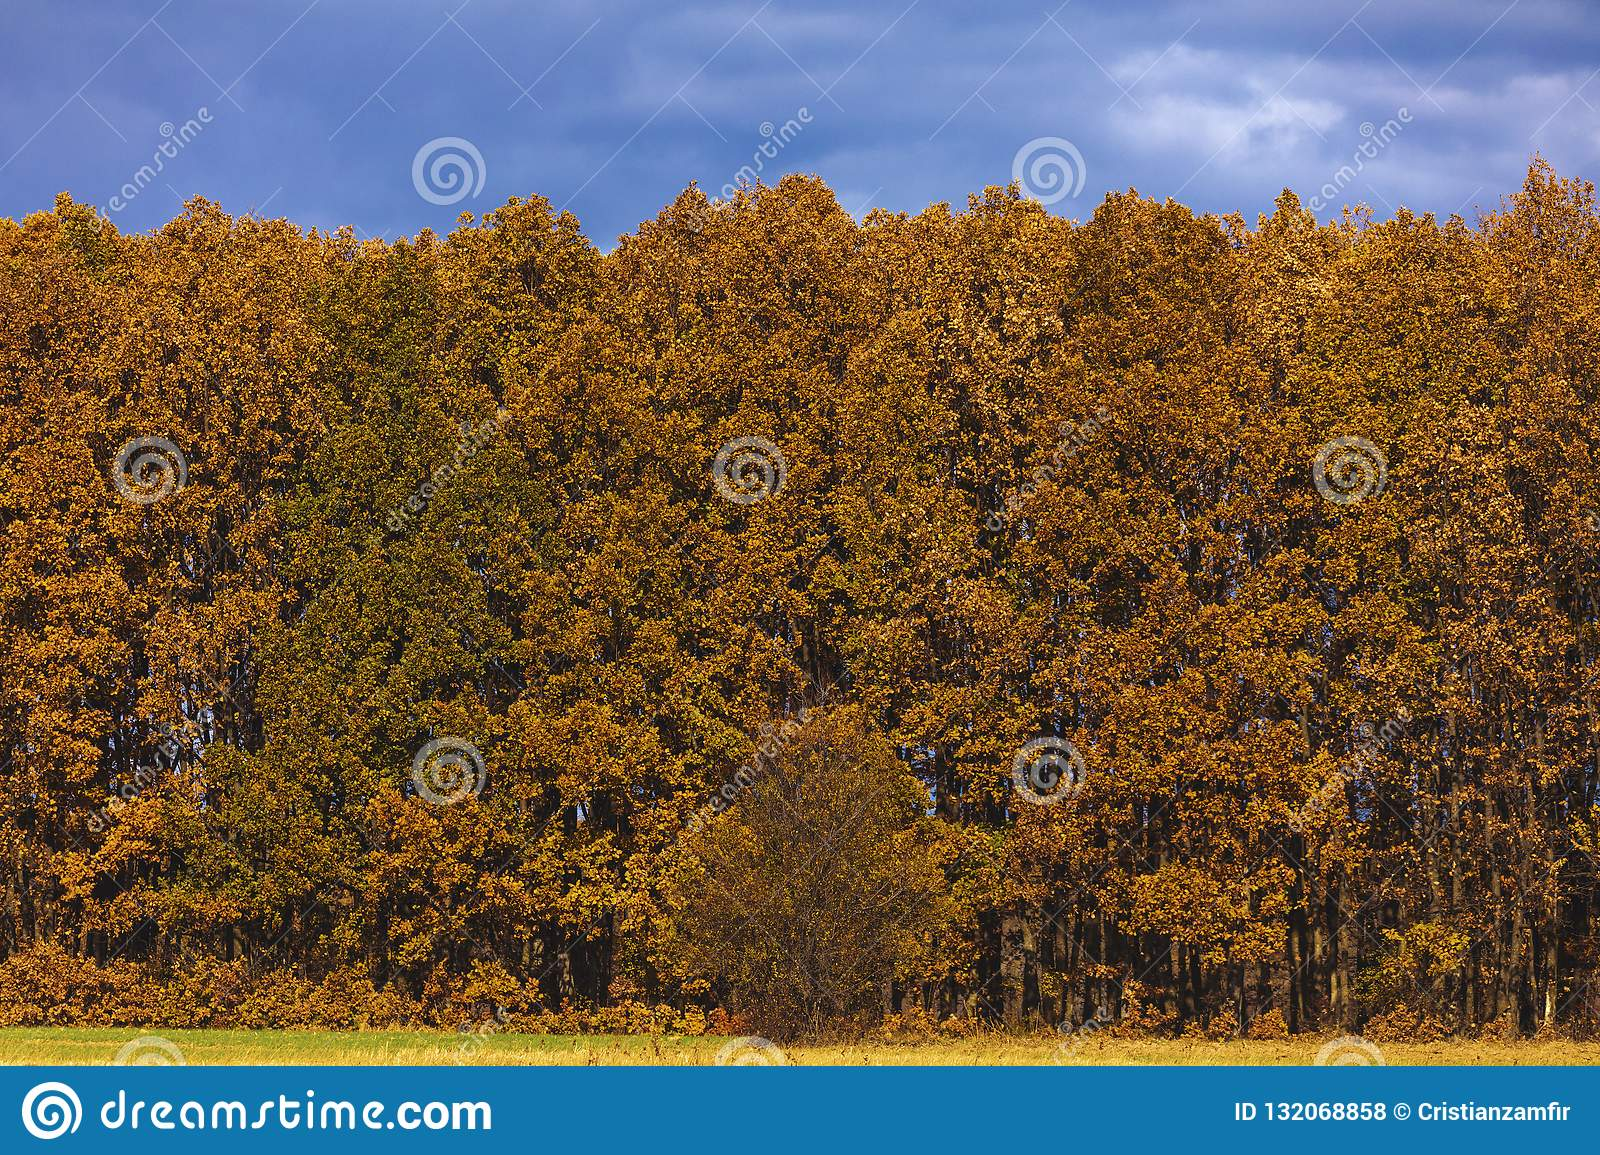 Beautiful Landscape With Oak Forest Stock Photo Image Of Orange Country 132068858